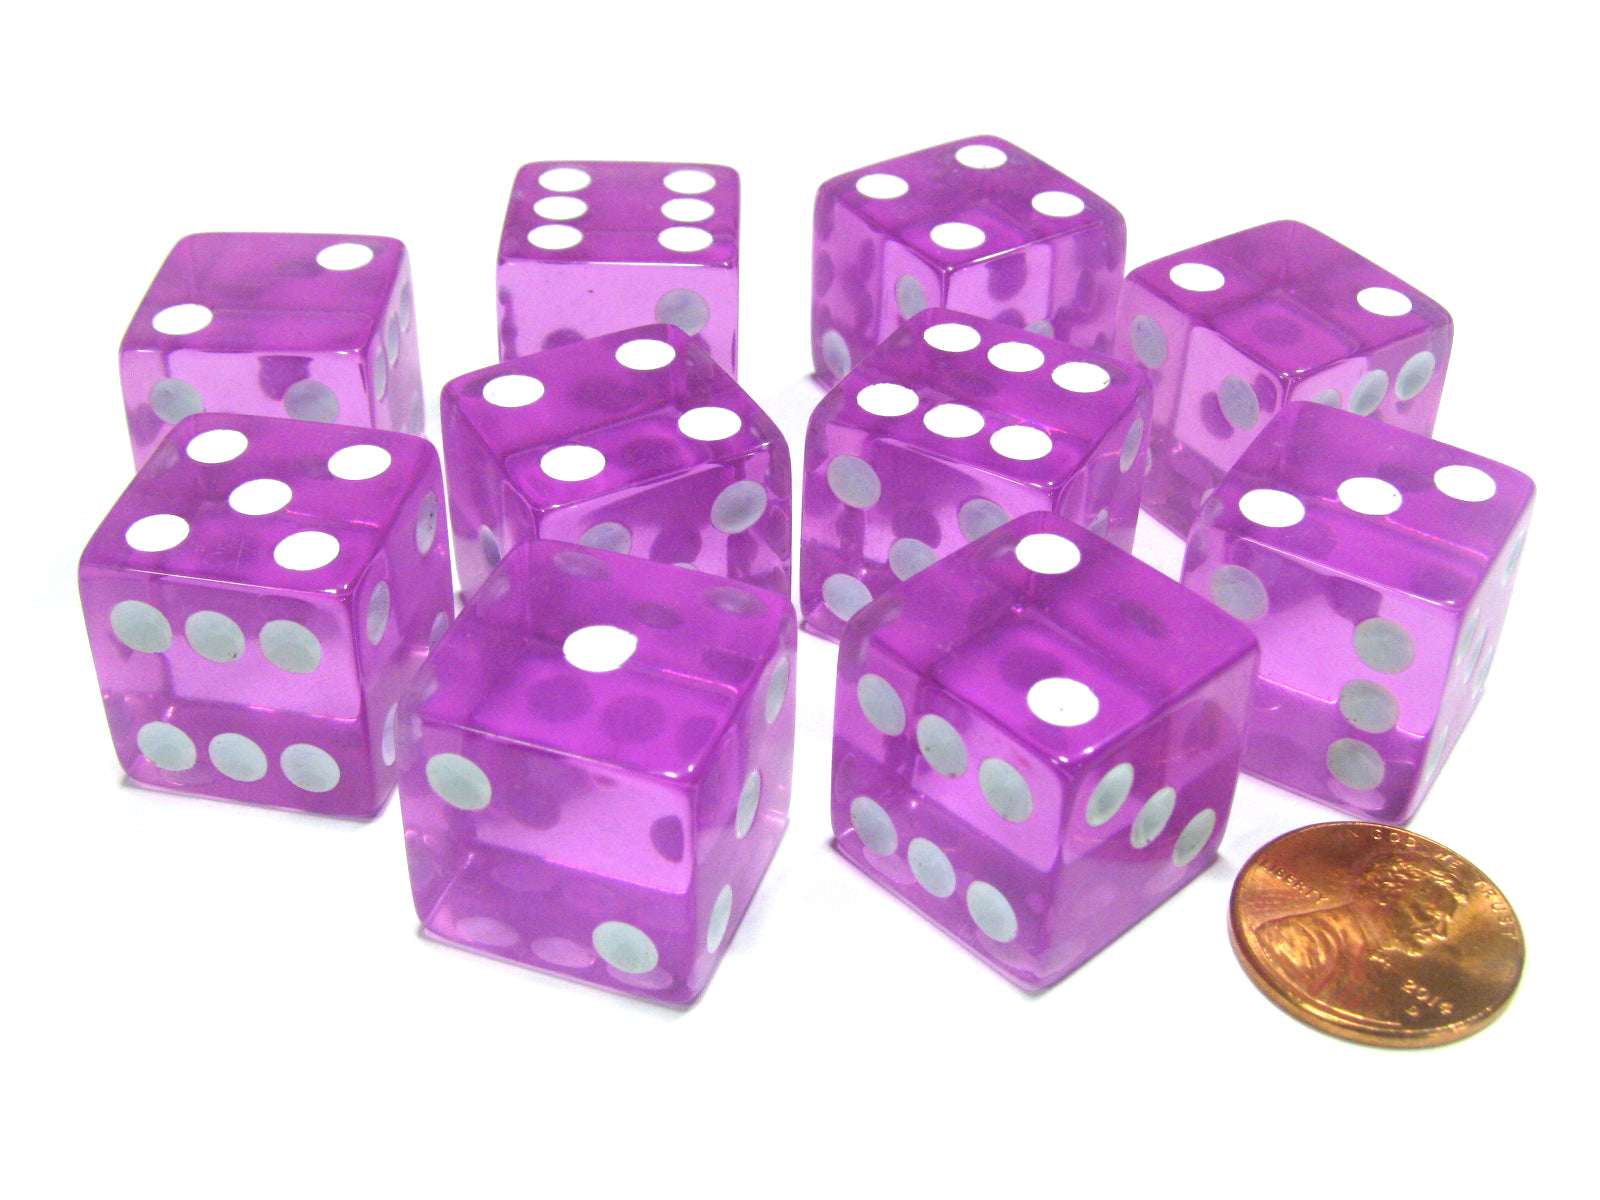 Set of 10 D6 Square Edged 19mm Dice - Transparent Pink with White Pips